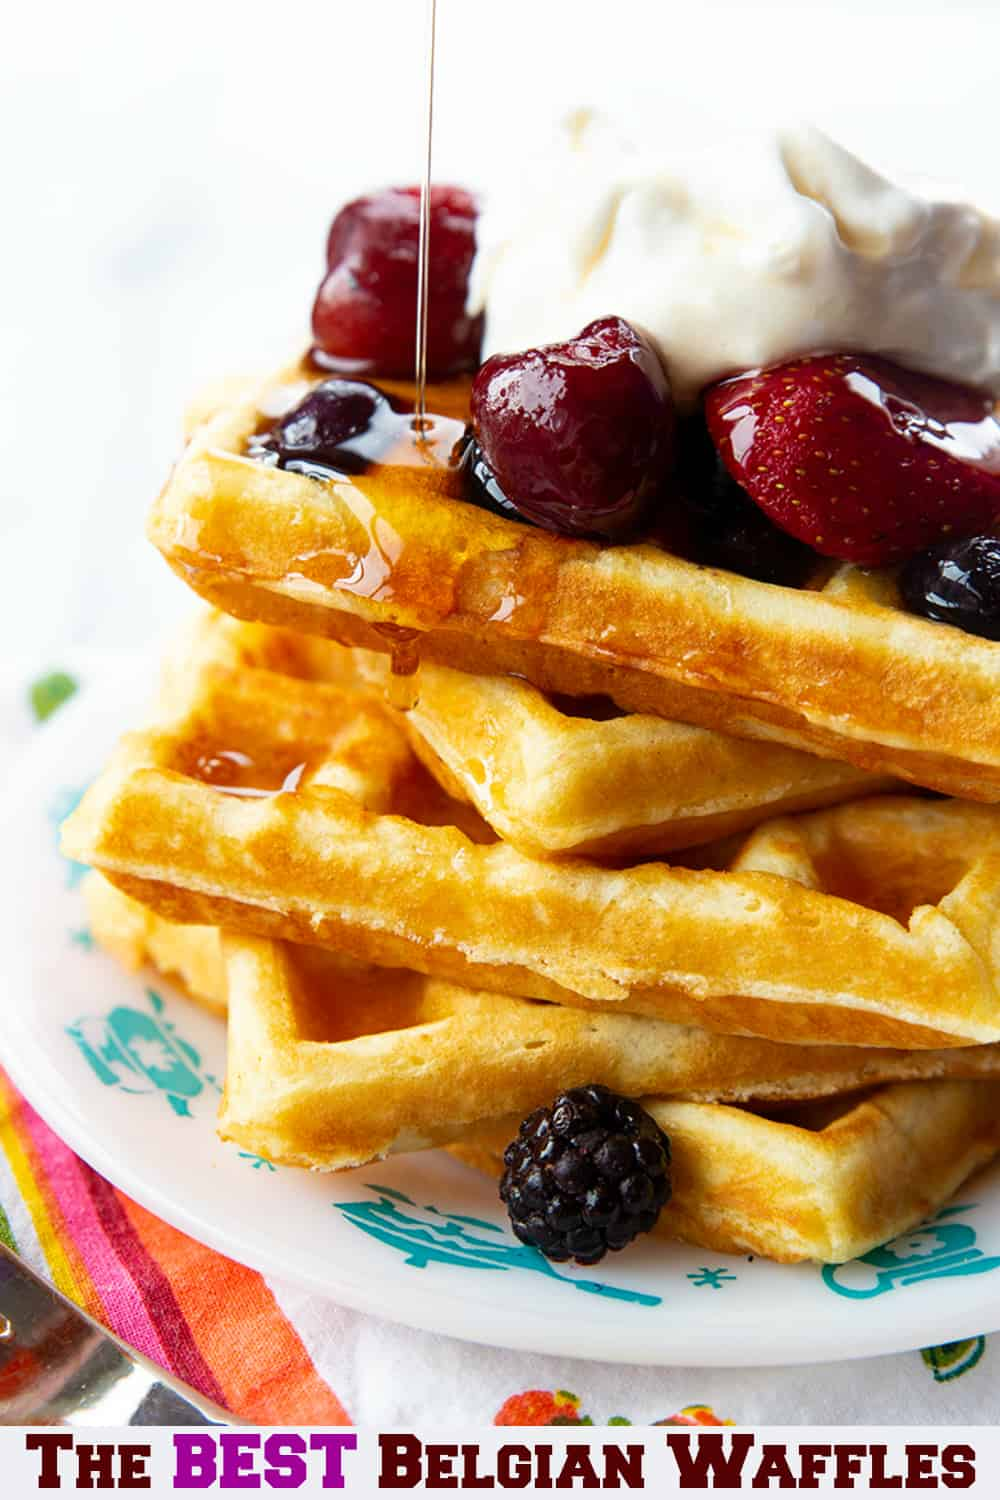 Nothing beats homemade Belgian waffles for breakfast, lunch OR even dinner! These crispy waffles are a family favorite that my own mom has been making since the 80's! #waffles #breakfast